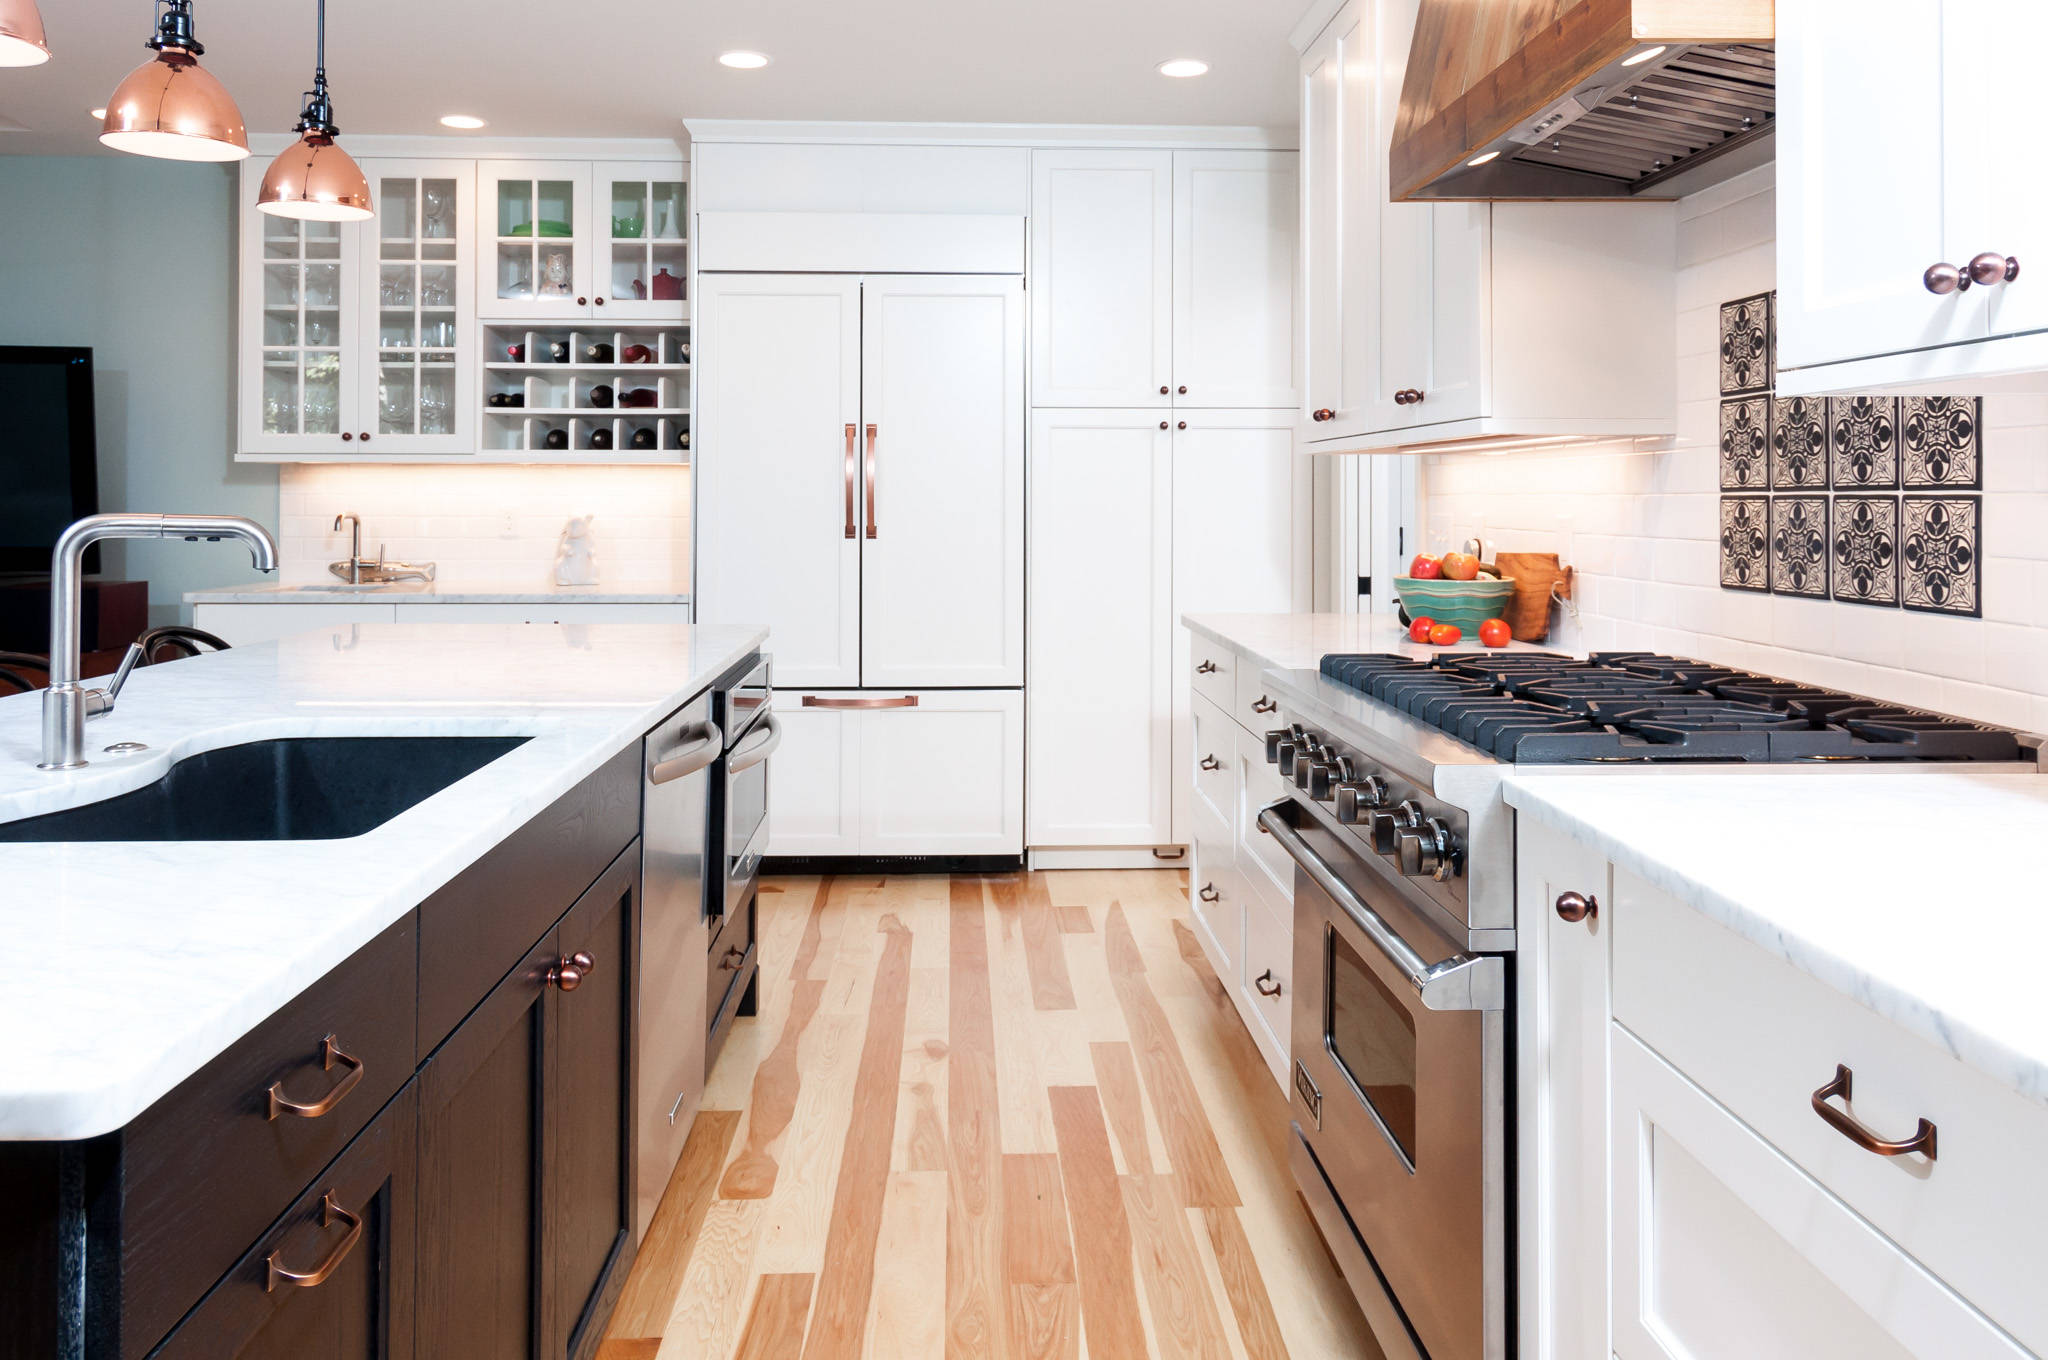 White Cabinets with Wood Floors Transitional Kitchen Copper Accents Stainless Steel Appliances White Tile Backsplash